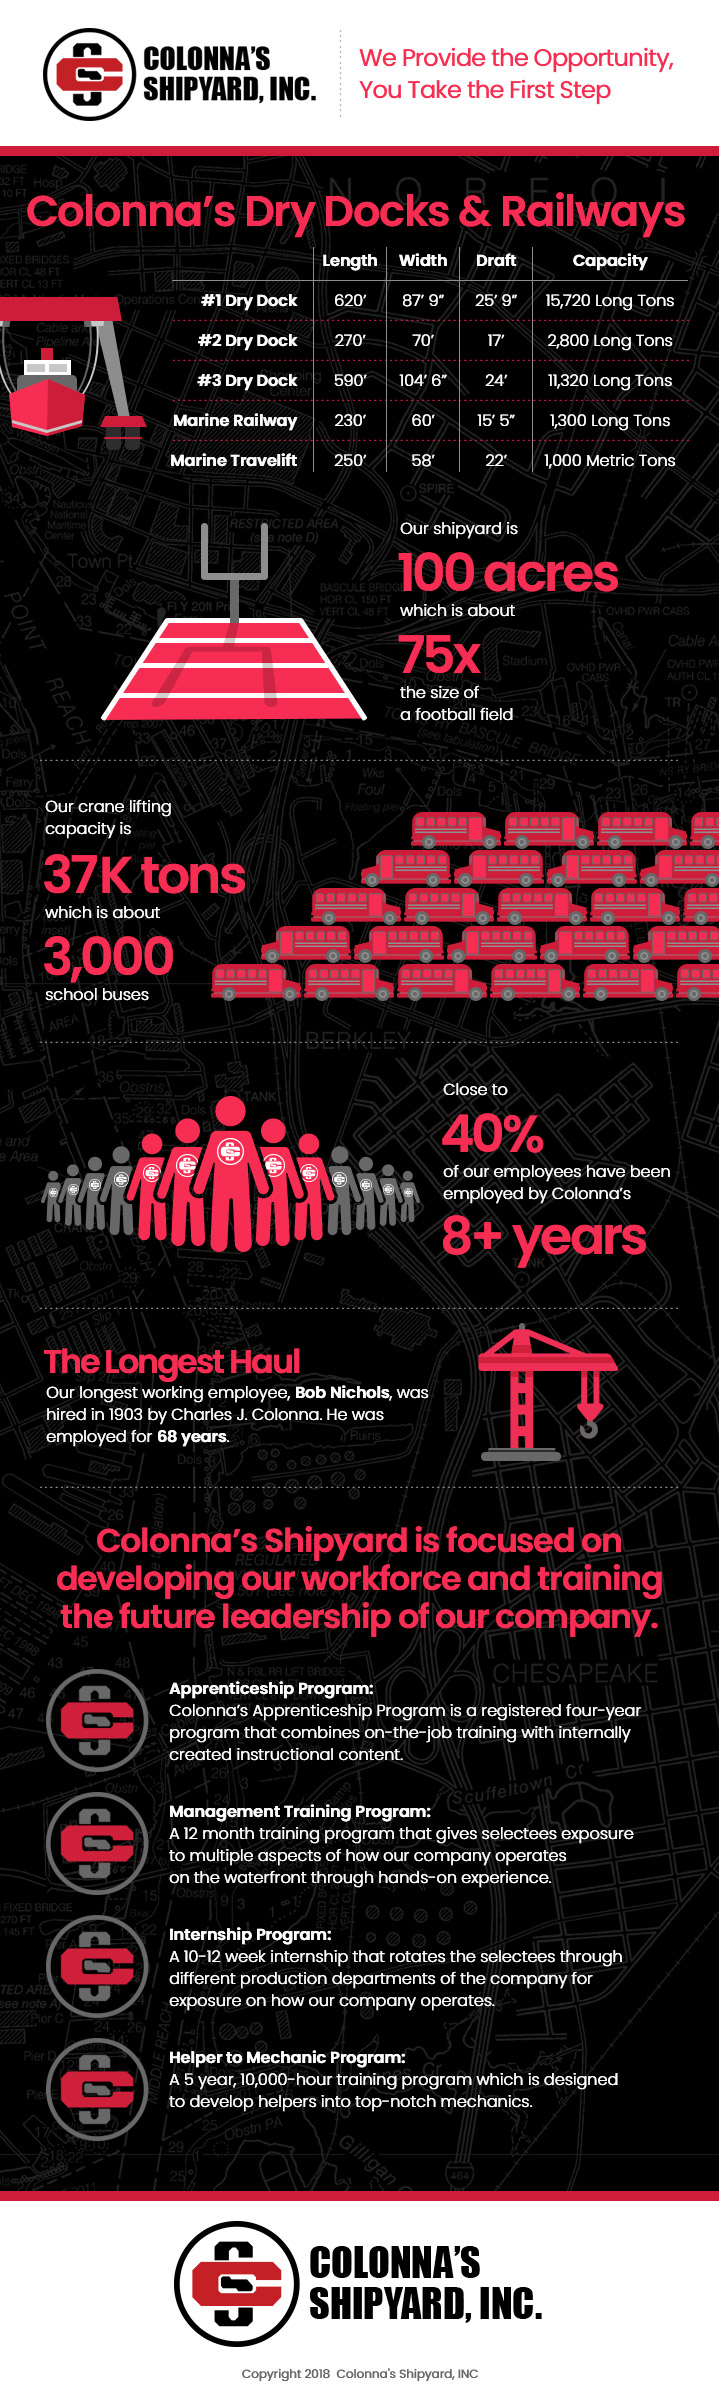 Colonna's Shipyard Career Infographic